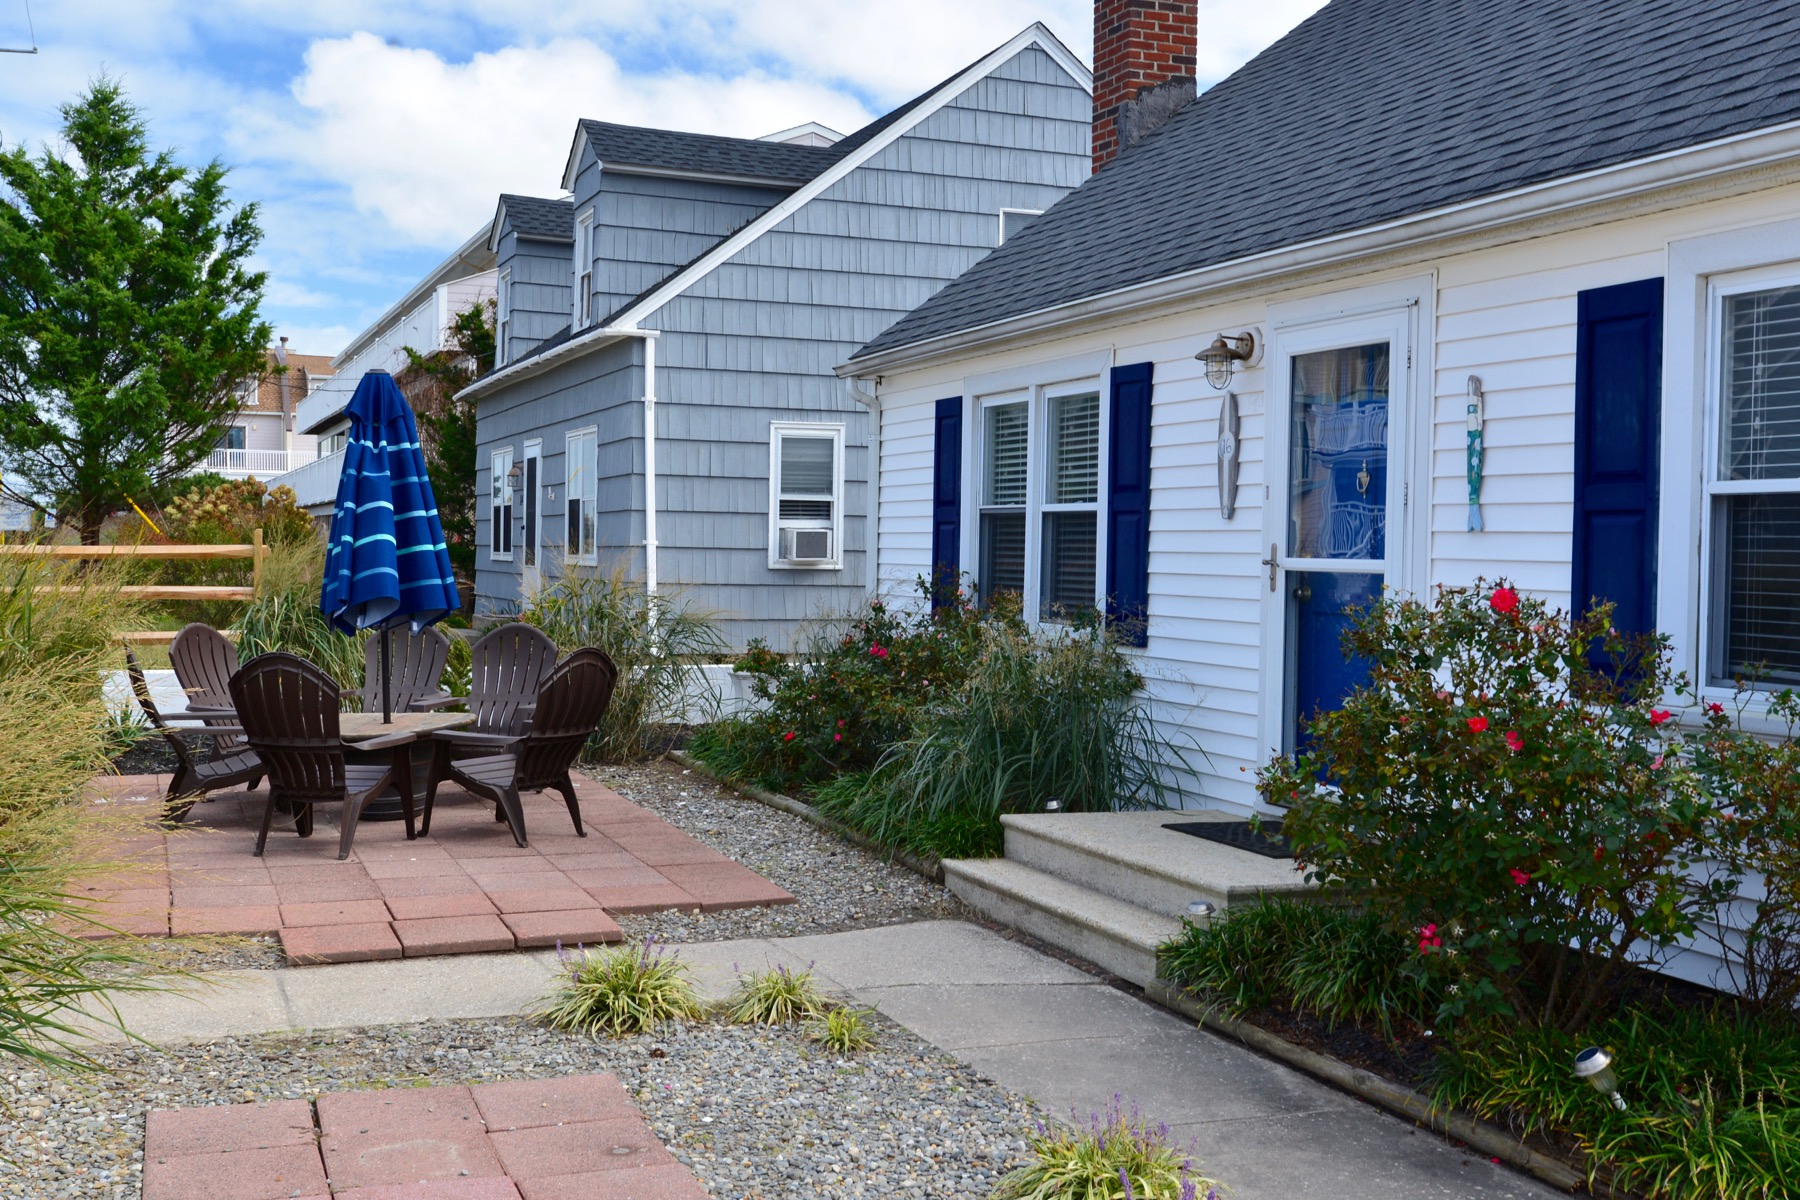 single family homes for Sale at 16 New Orleans St , Dewey Beach, DE 19971 16 New Orleans St Dewey Beach, Delaware 19971 United States